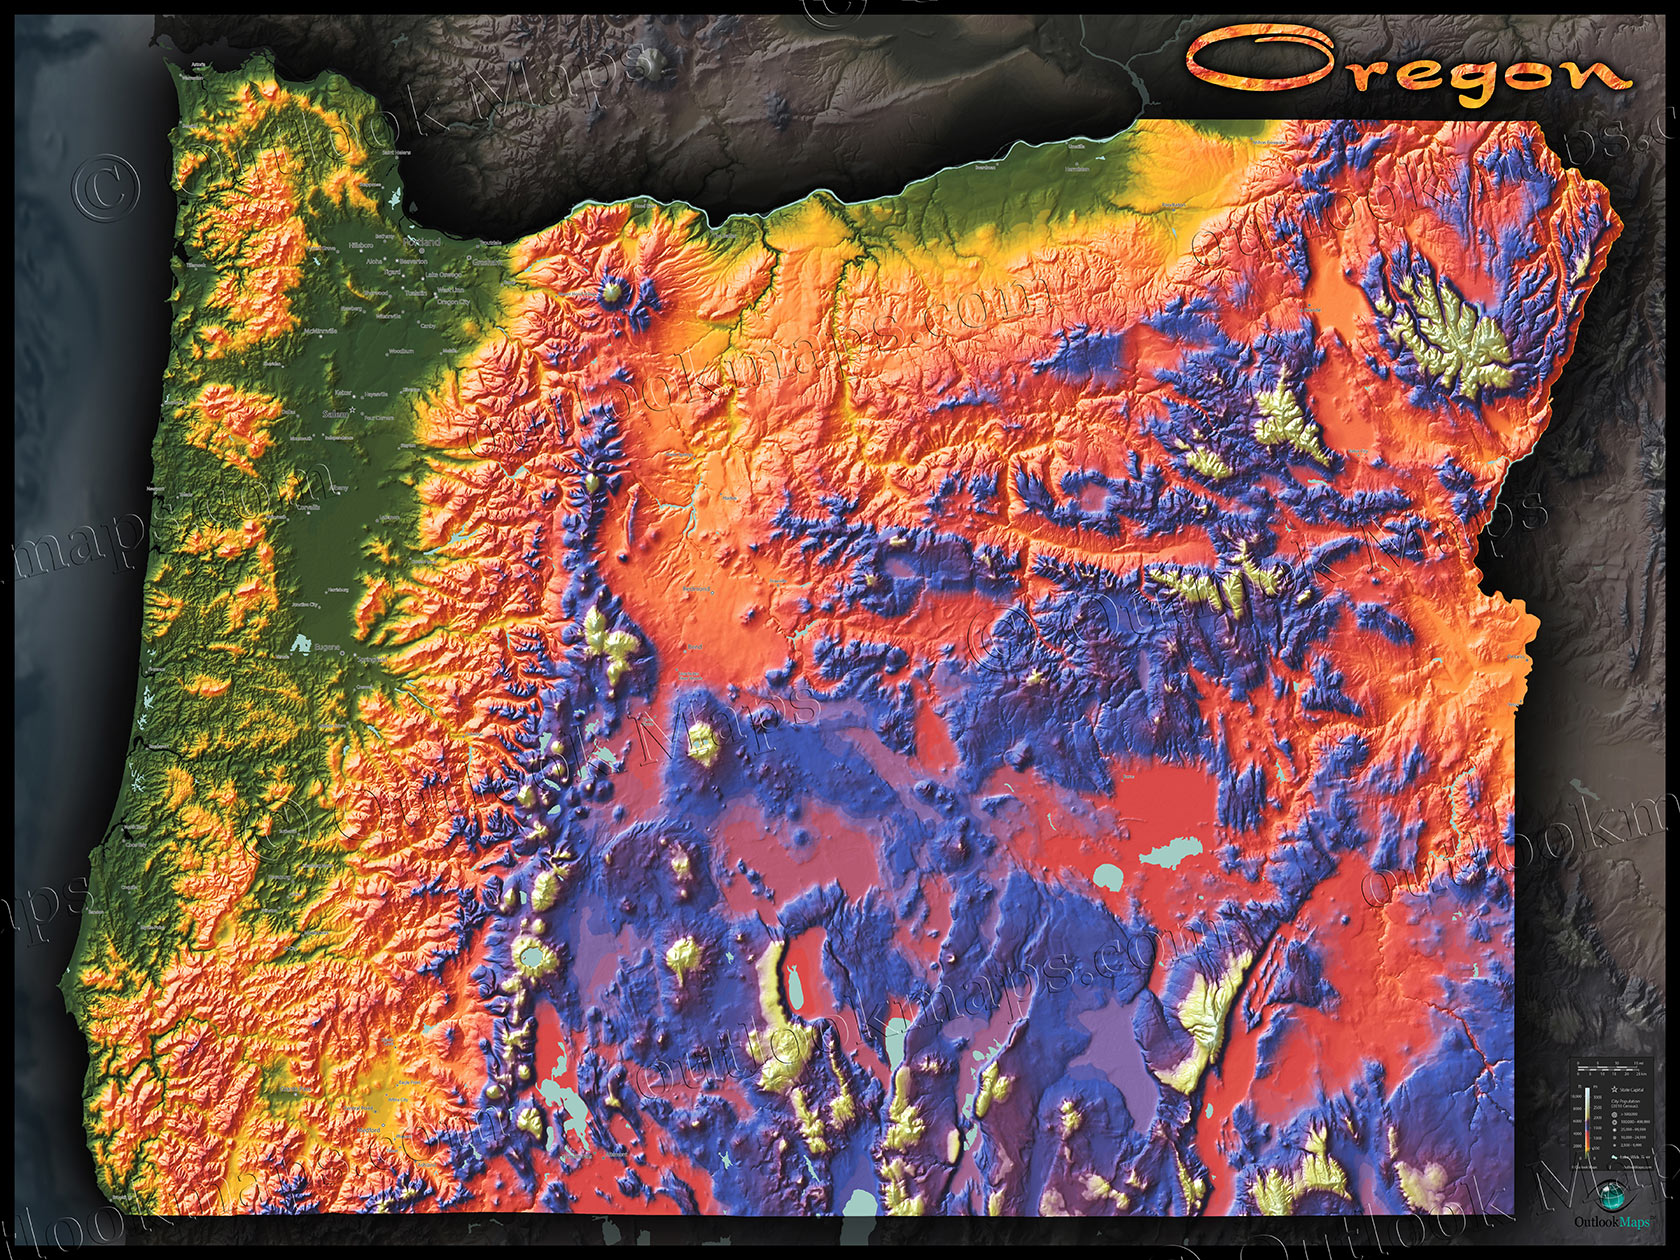 Oregon Map Image.Oregon Topography Map Physical Features Mountain Colors